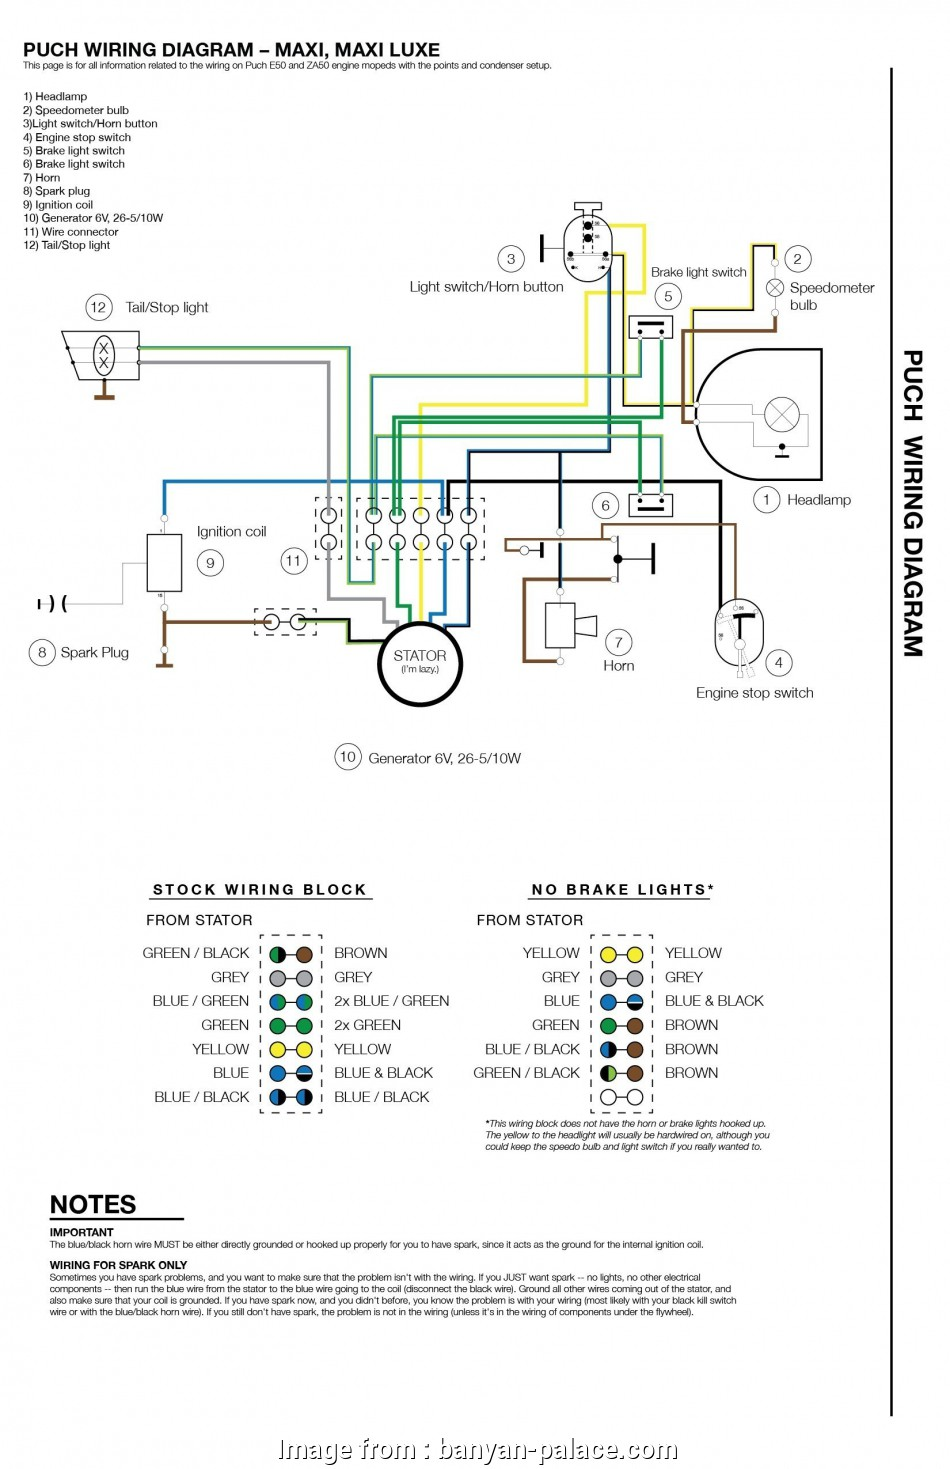 How To Wire  Prong Light Switch Simple 3 Phase Outlet Wiring Diagram  4 Prong Starter Relay